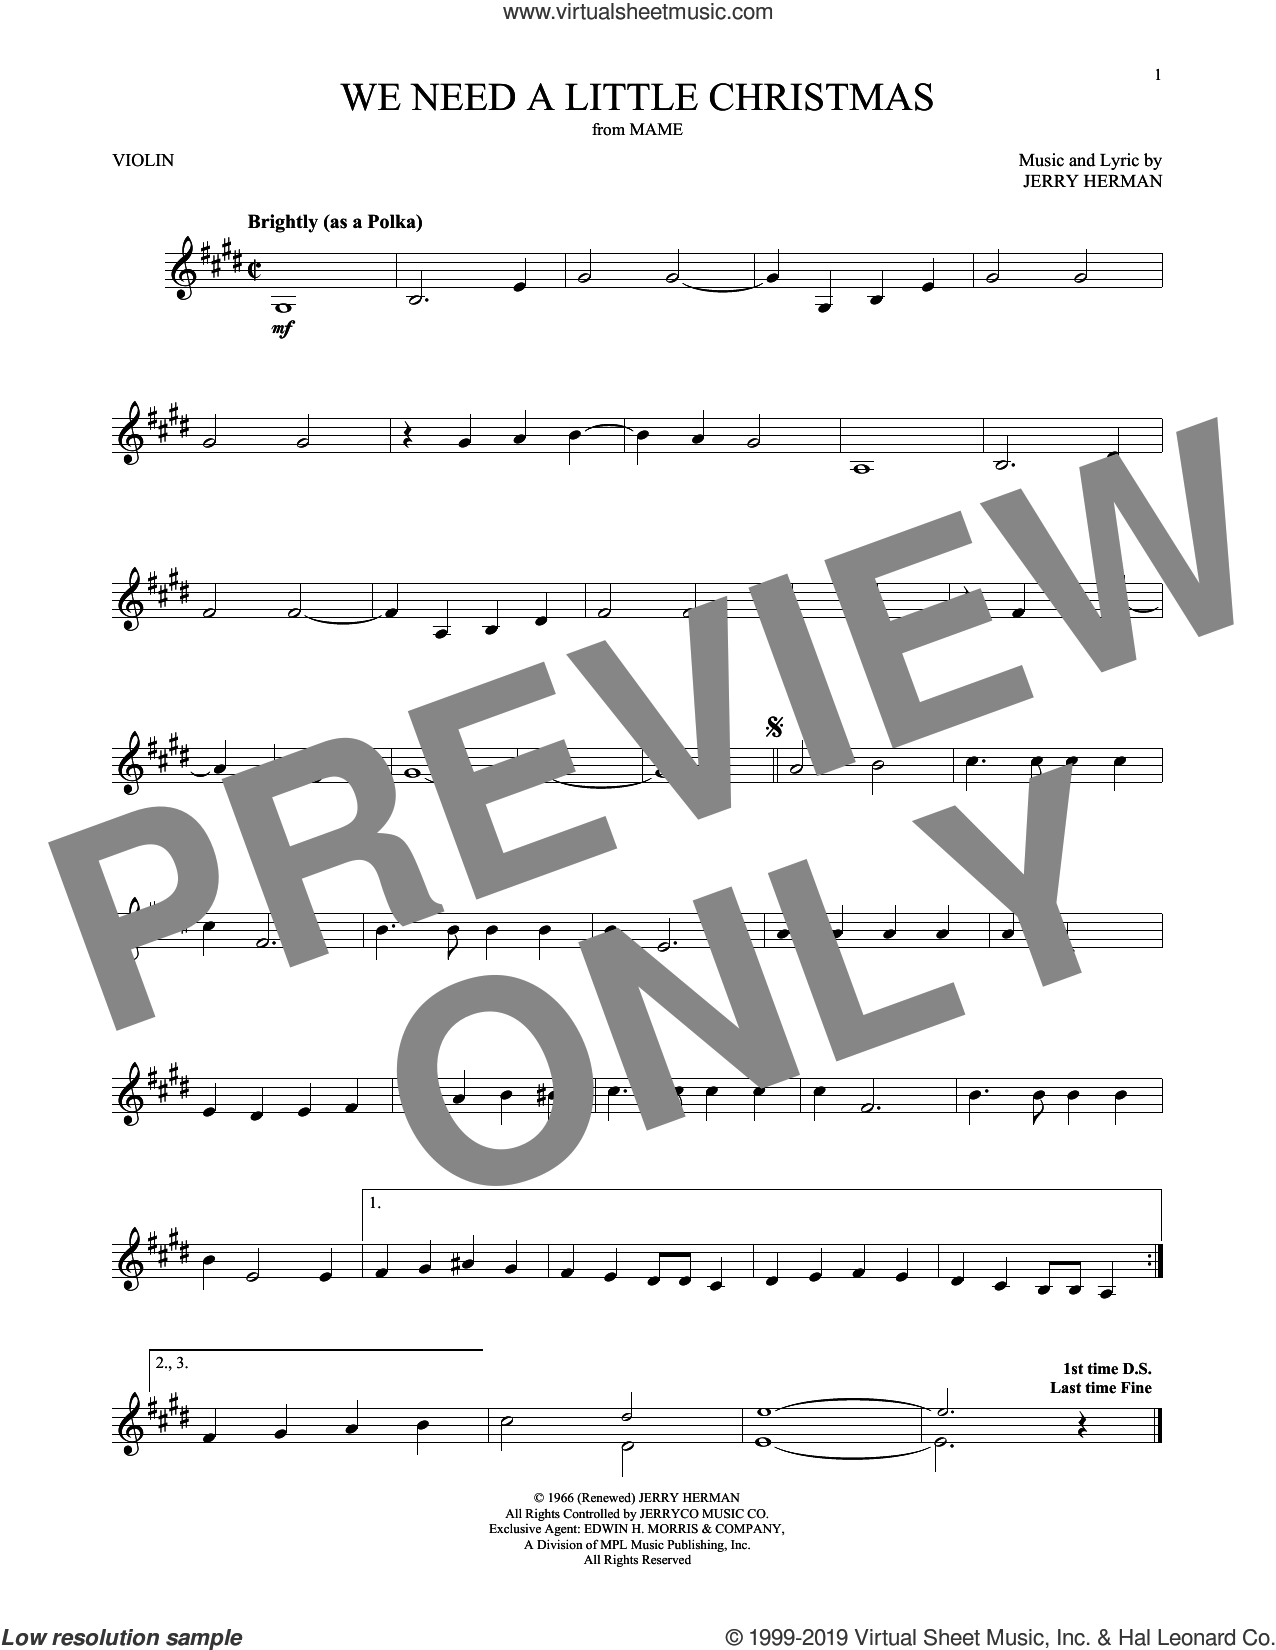 We Need A Little Christmas sheet music for violin solo by Jerry Herman and Kimberley Locke, intermediate skill level